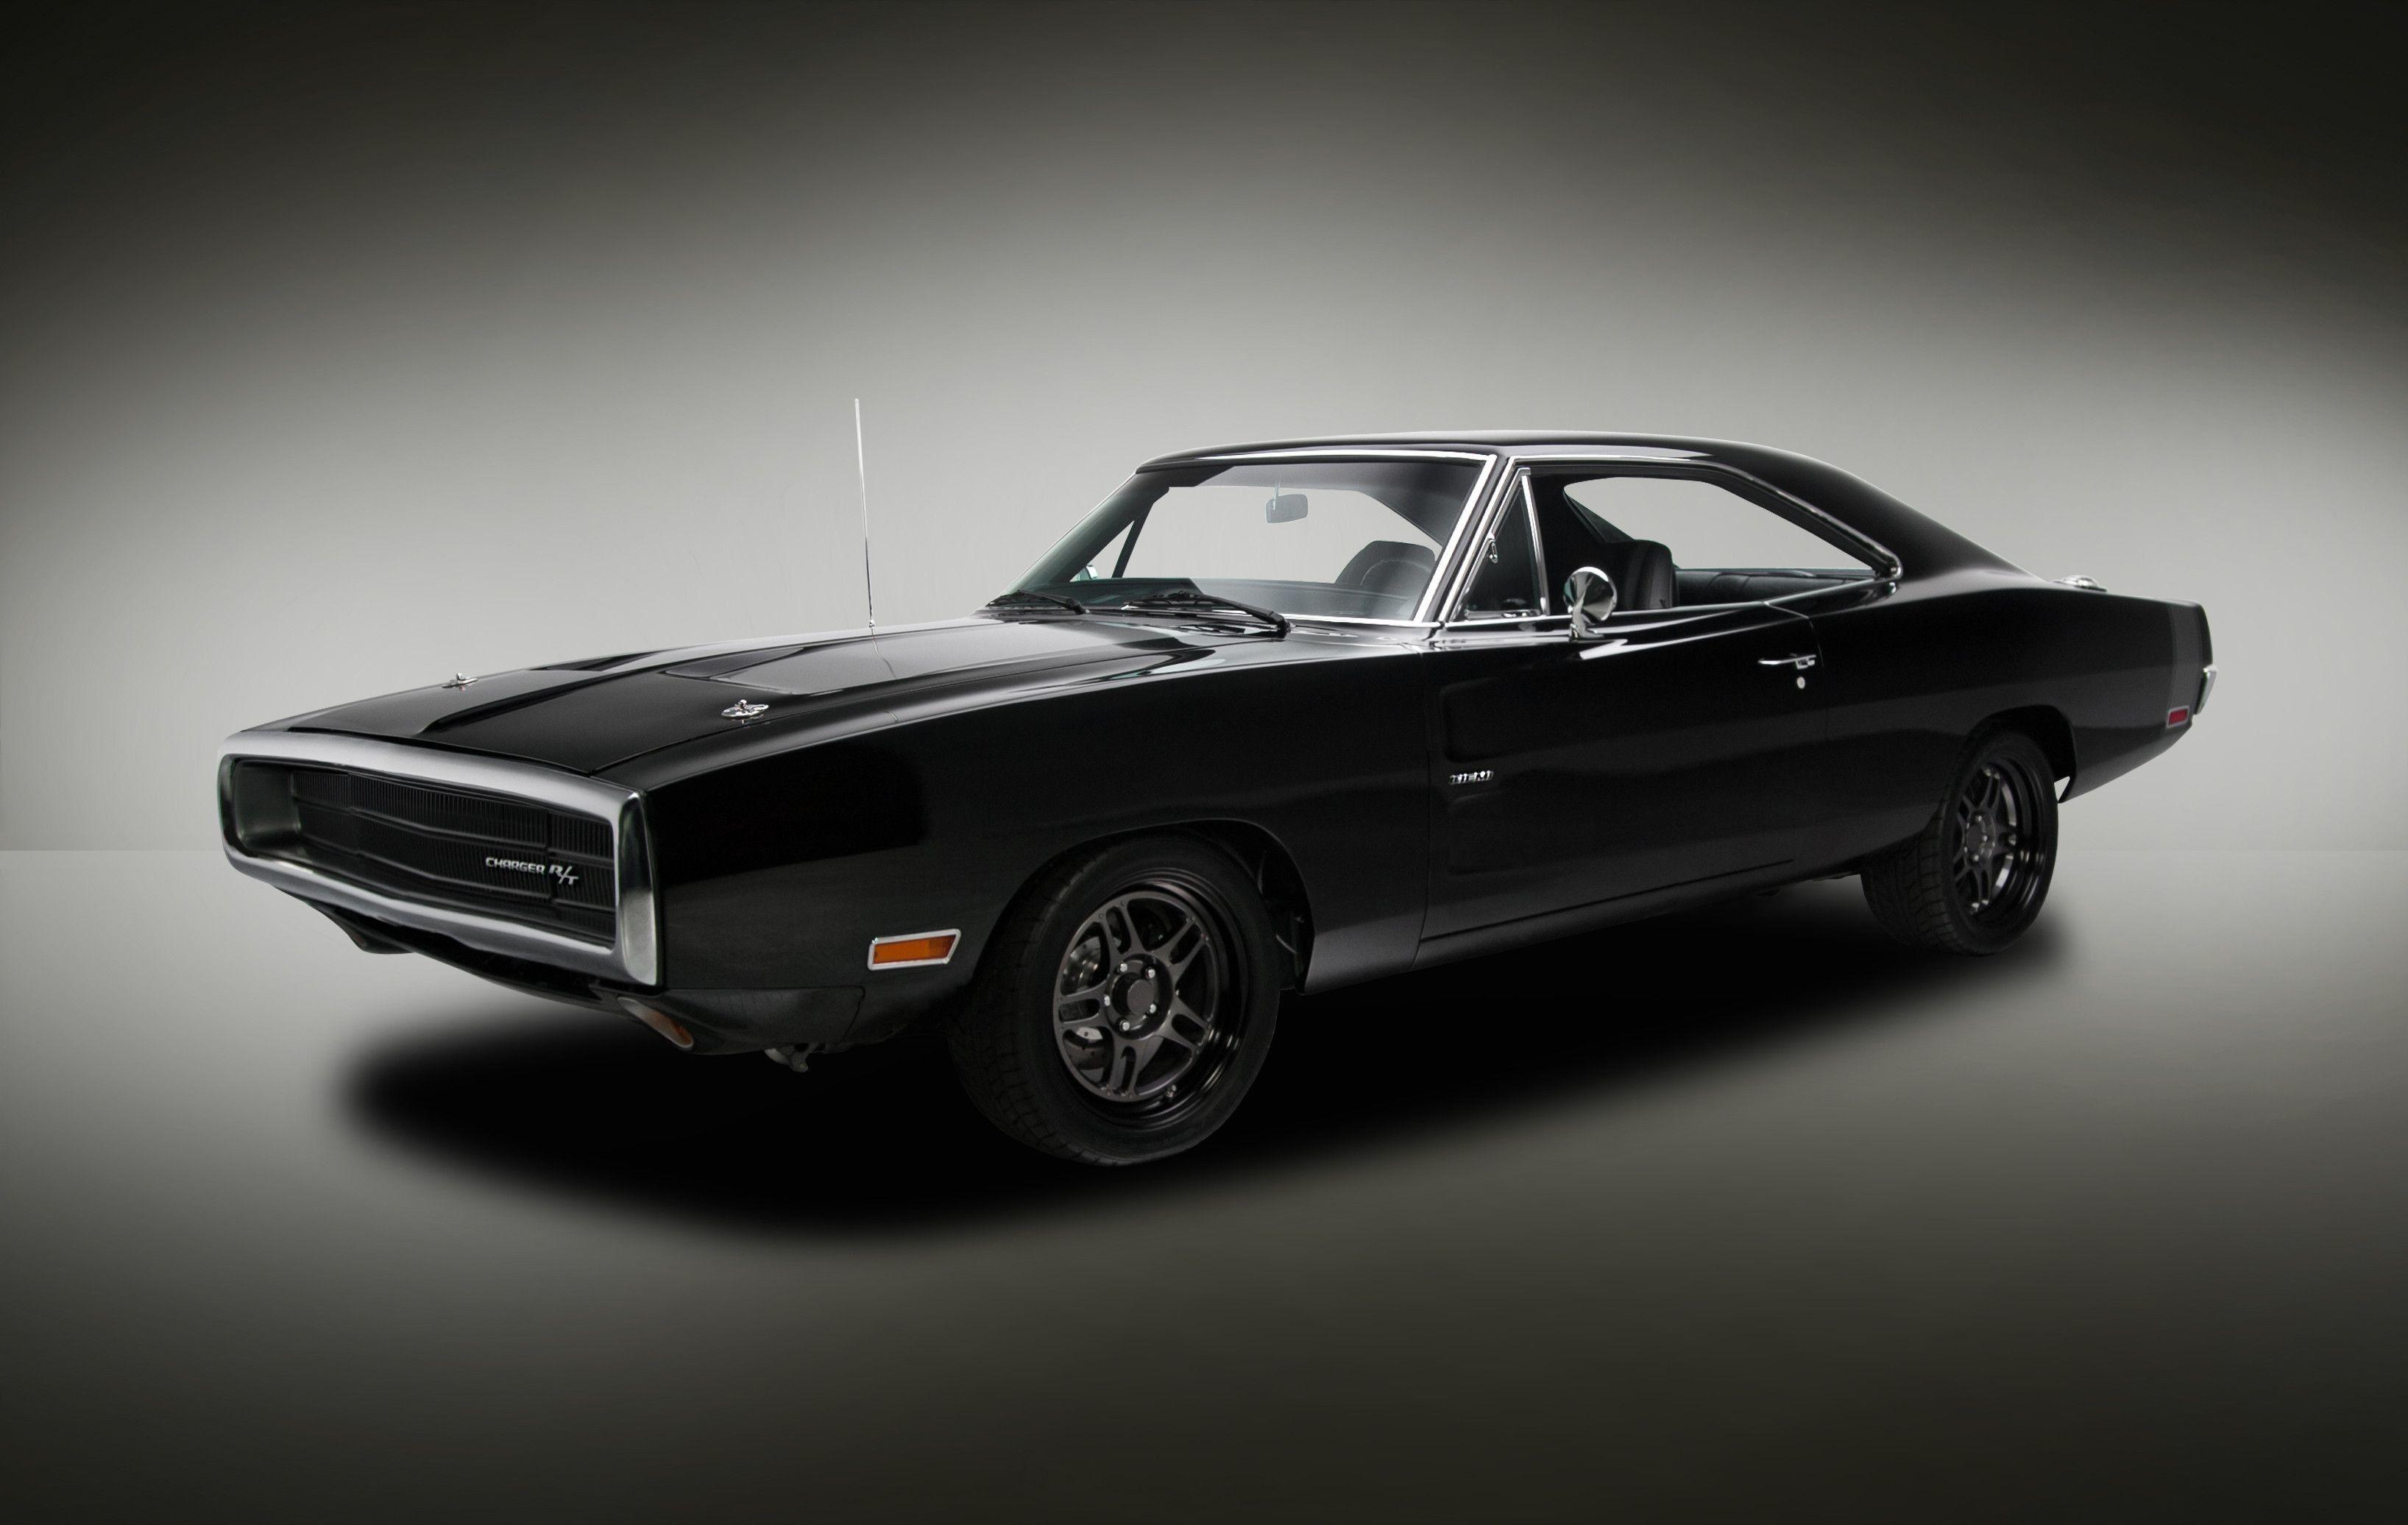 1970 Dodge Charger Wallpapers HD